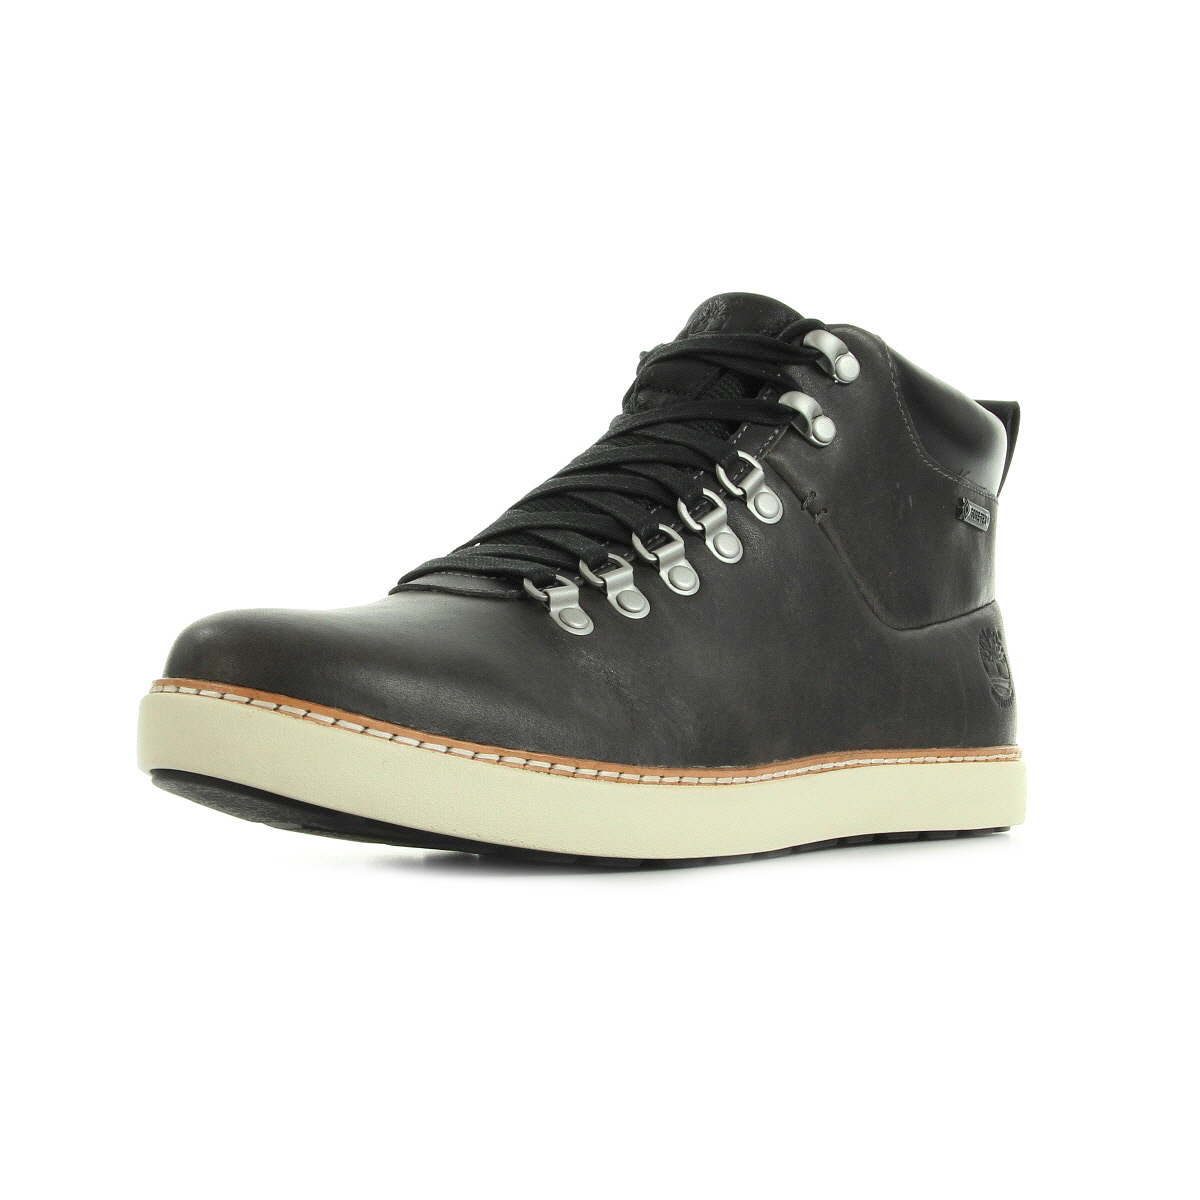 chaussures timberland gore tex homme. Black Bedroom Furniture Sets. Home Design Ideas